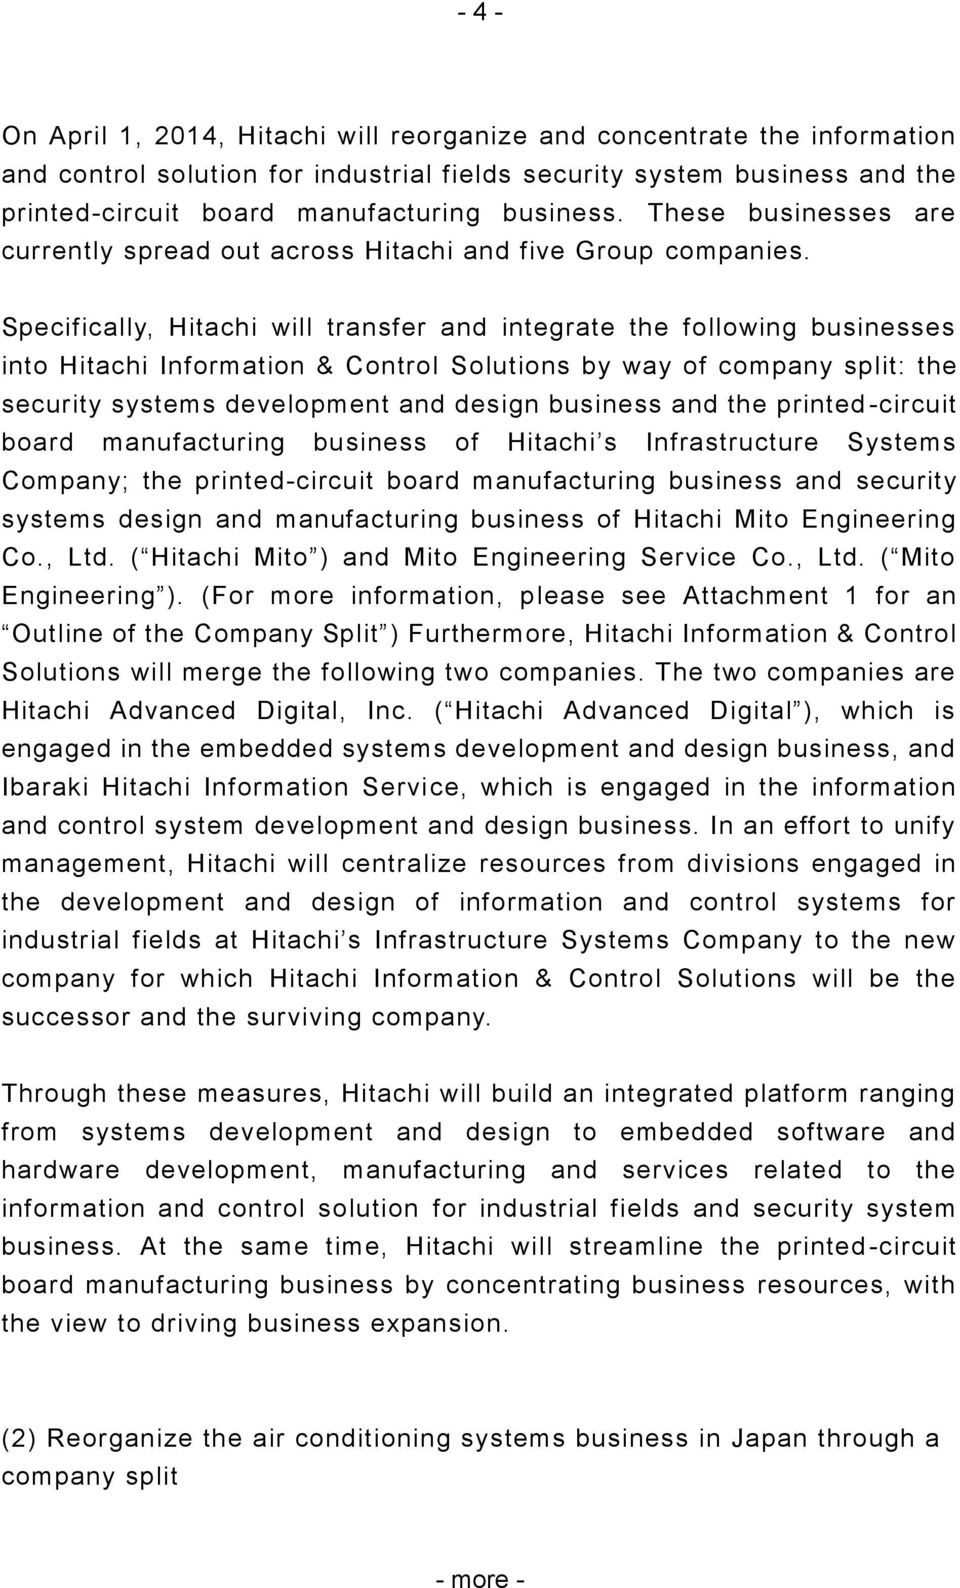 Specifically, Hitachi will transfer and integrate the following businesses into Hitachi Information & Control Solutions by way of company split: the security systems development and design business